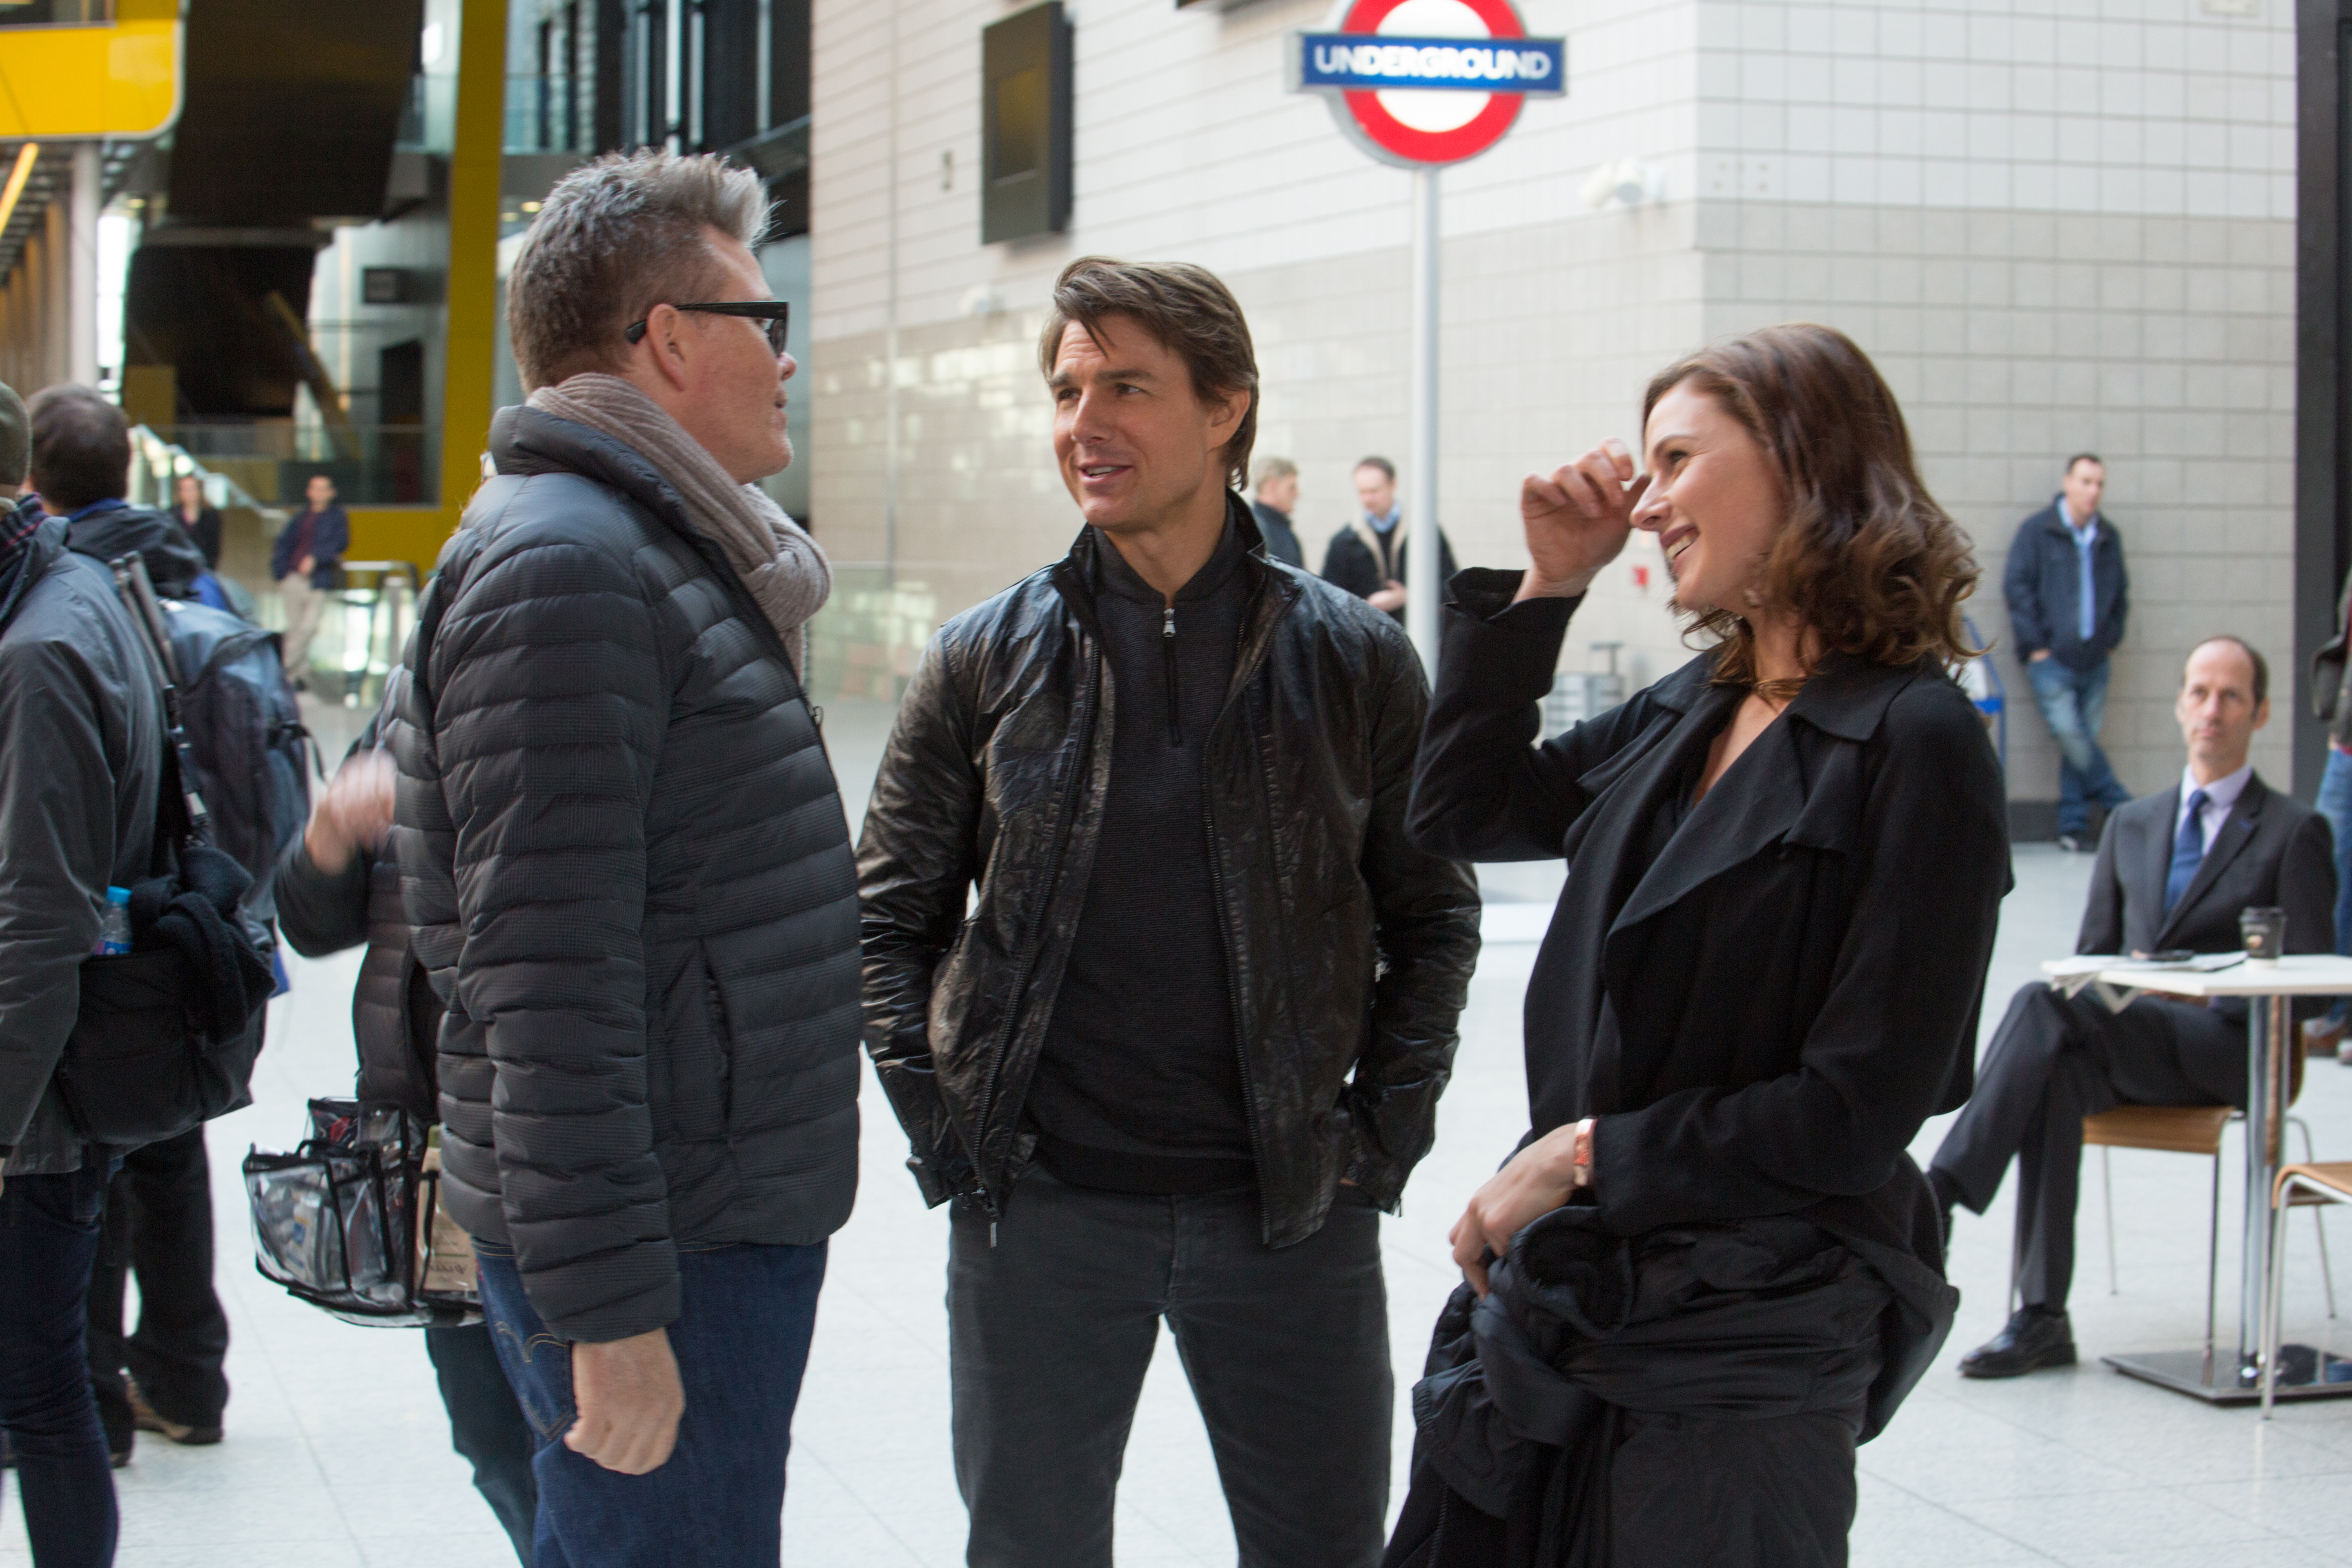 mision imposible 5 christopher mcquarrie tom cruise y rebecca ferguson